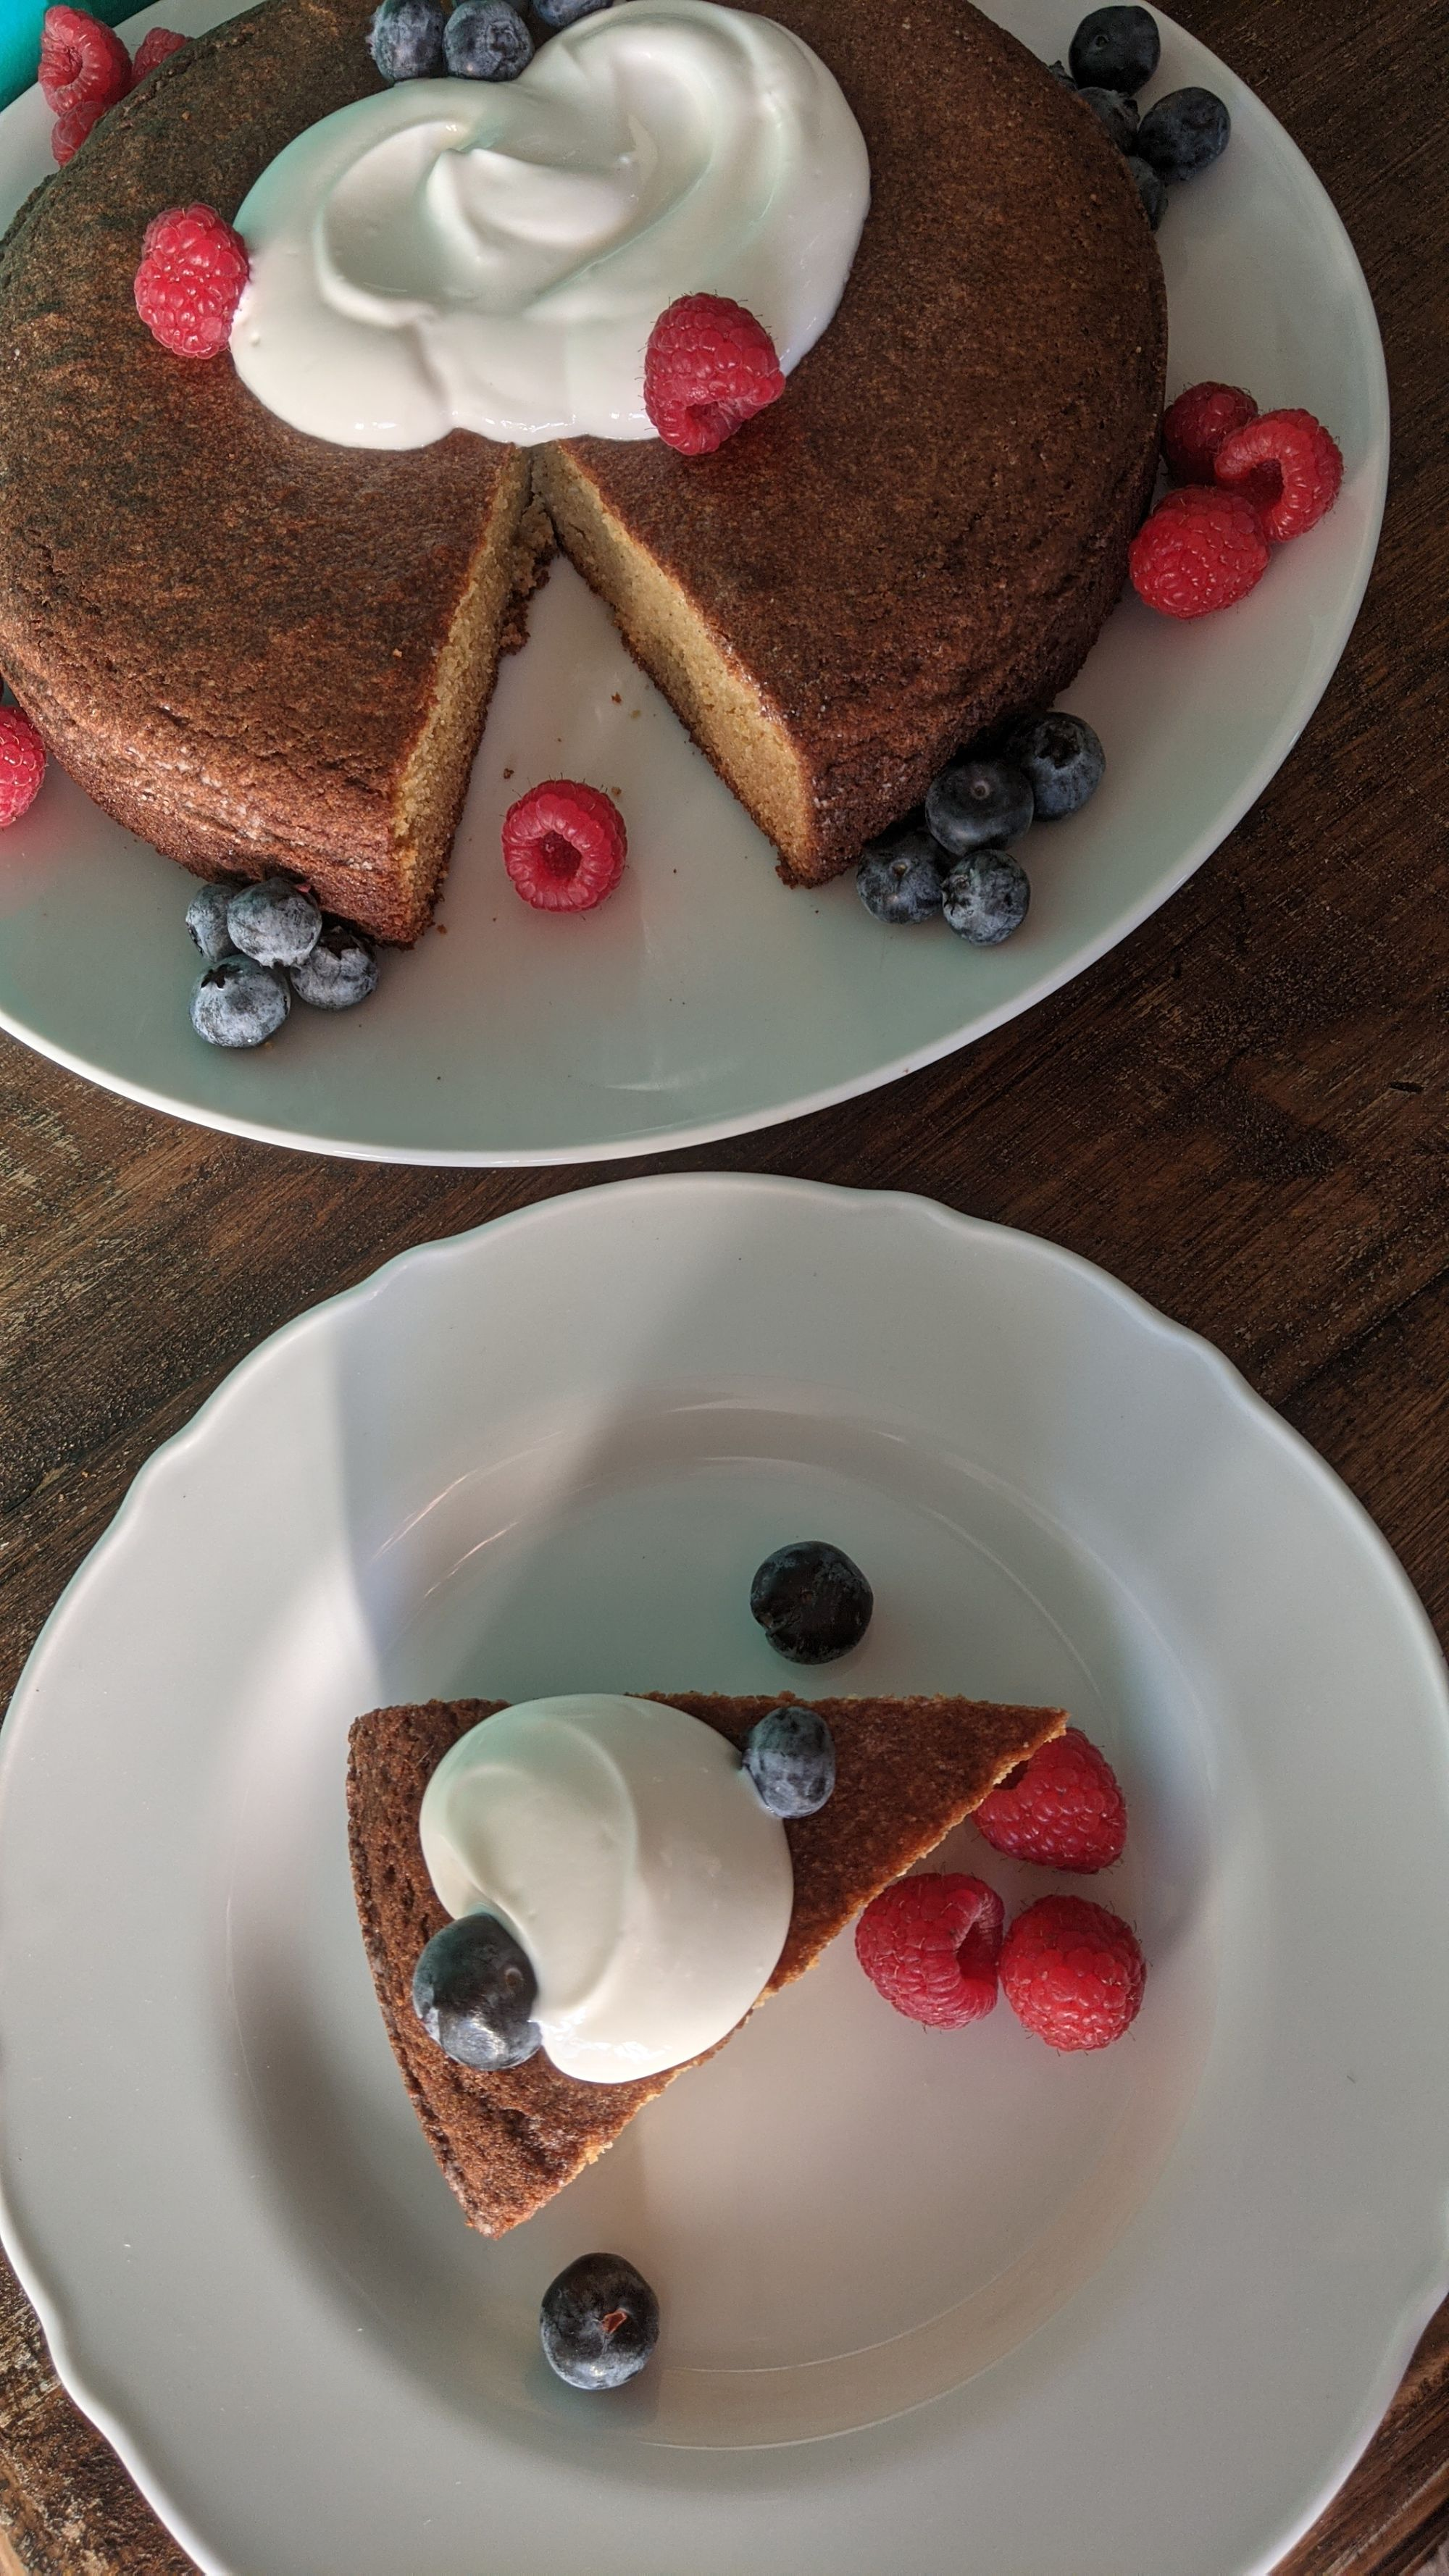 keto-friendly olive oil cake